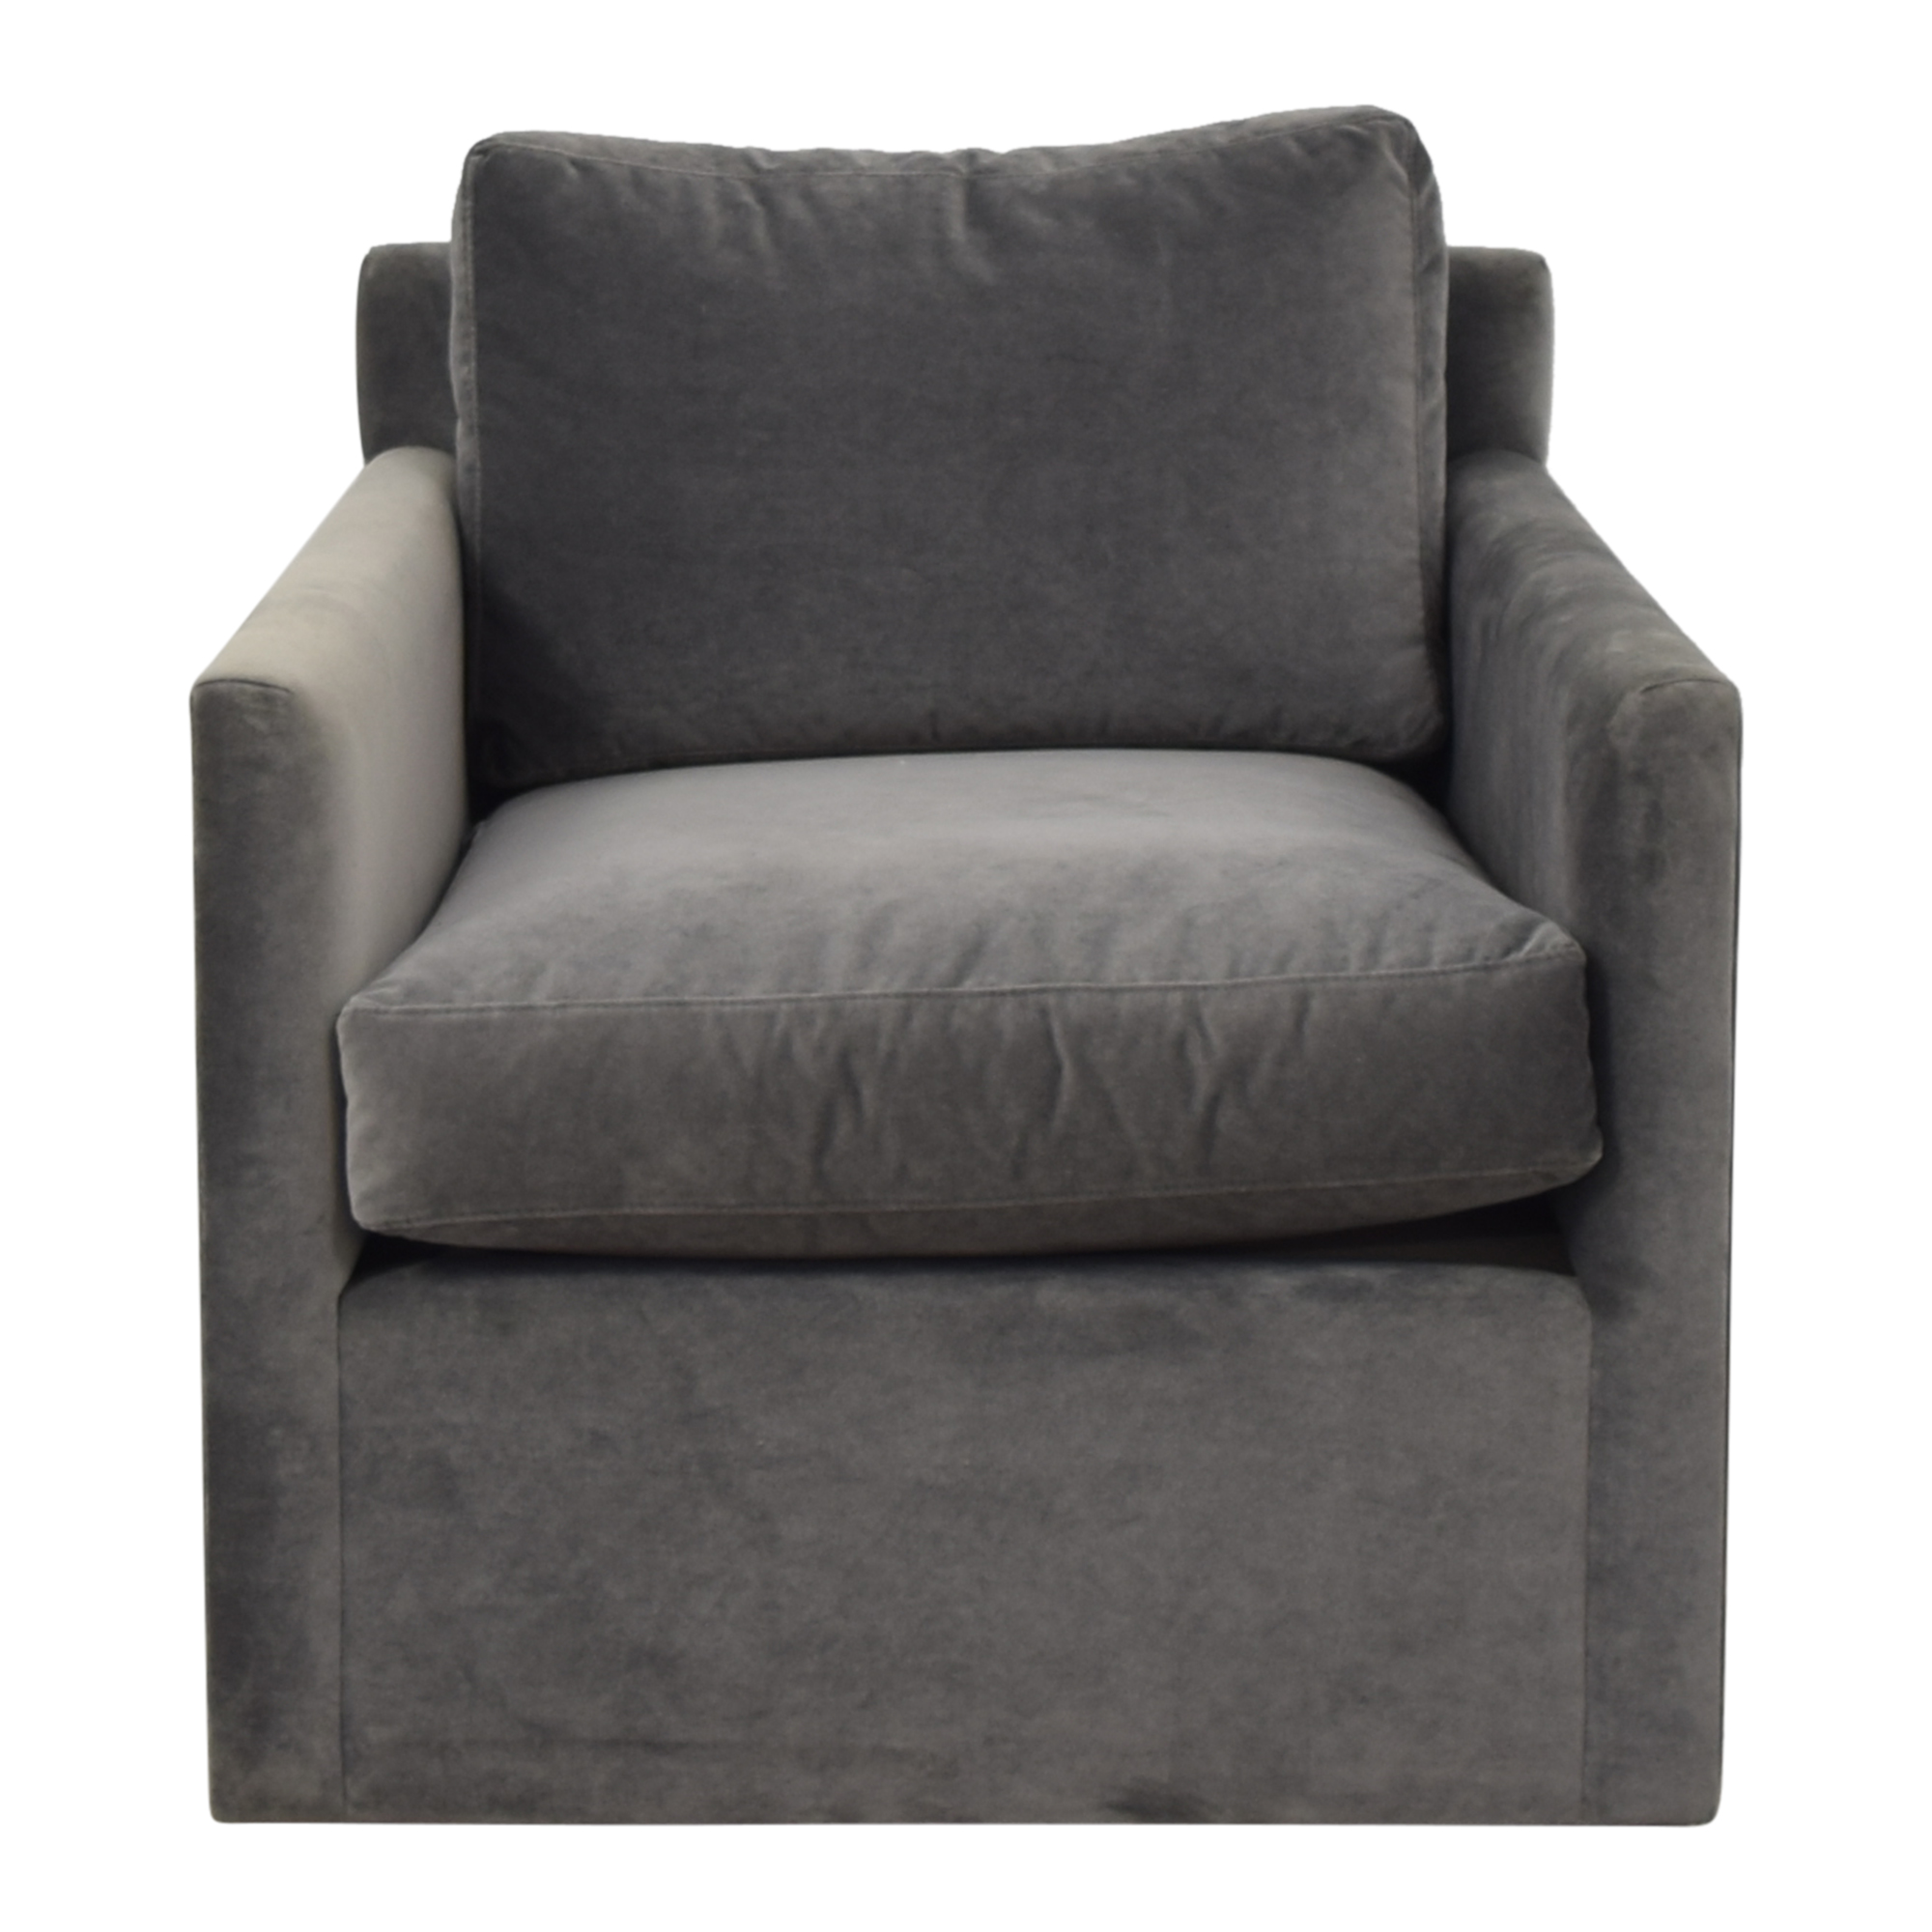 Restoration Hardware Restoration Hardware Oliver Track Arm Swivel Chair coupon